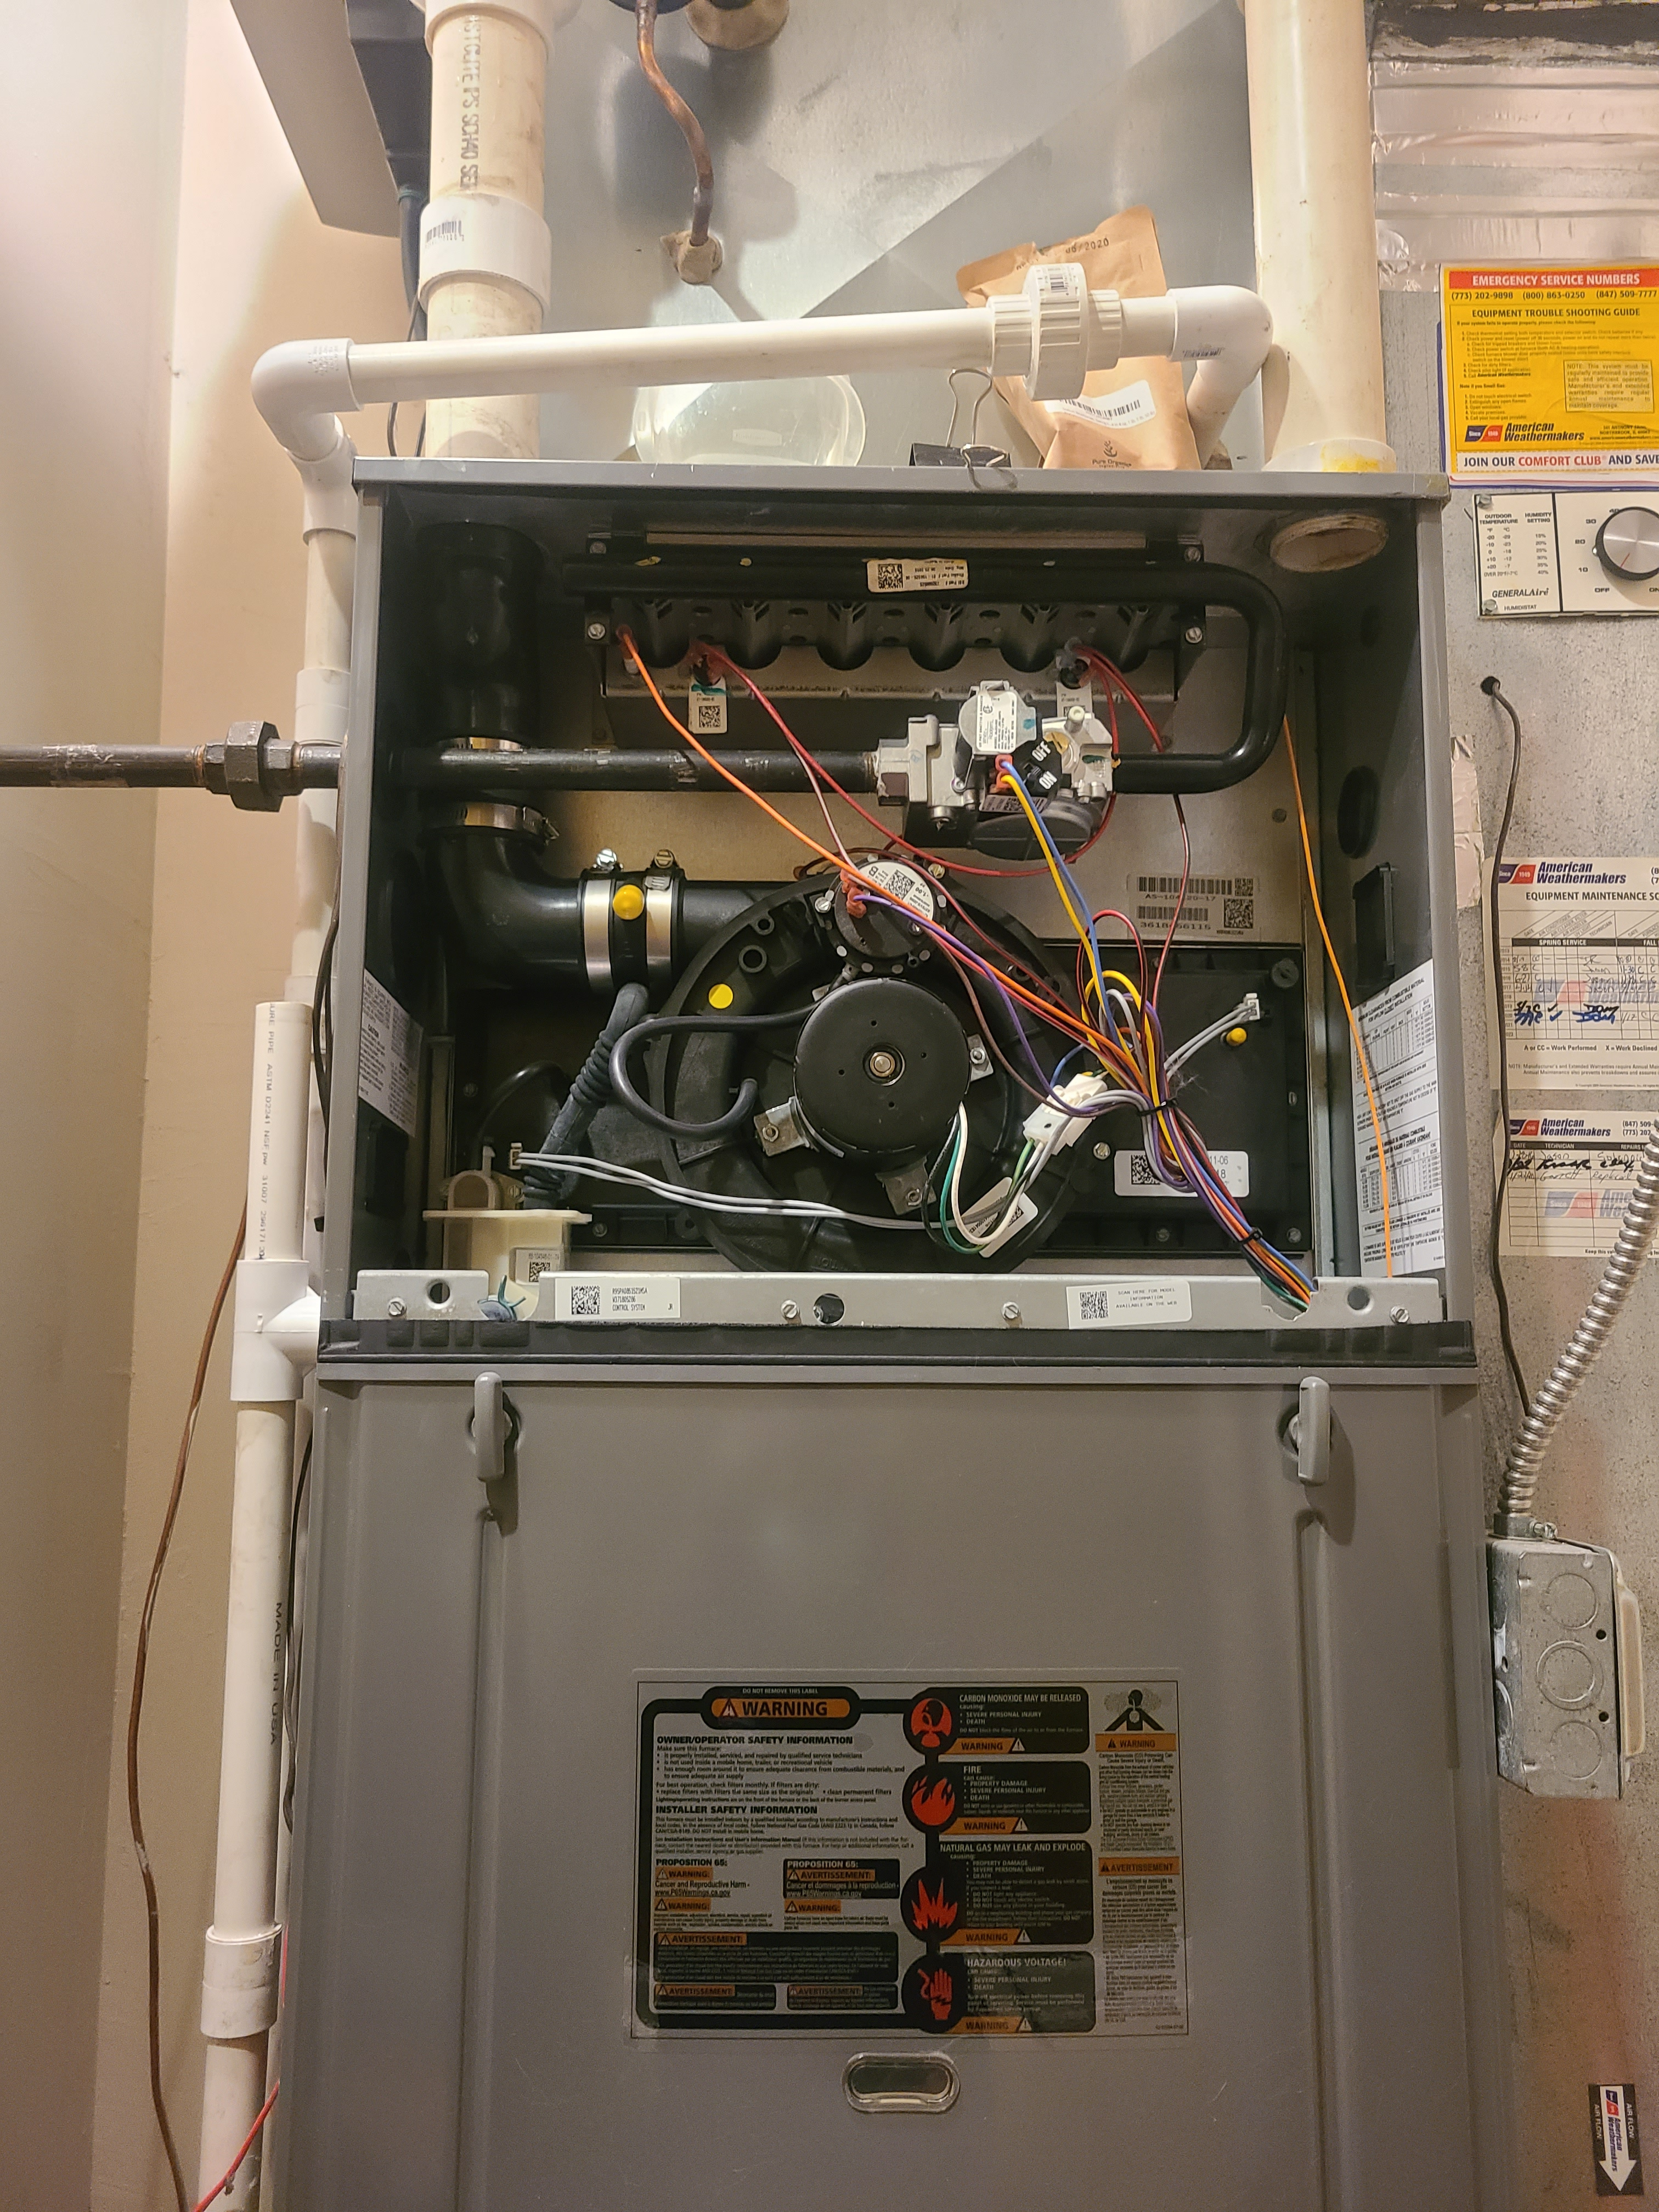 Furnace and humidifier maintenance in Chicago getting ready for winter